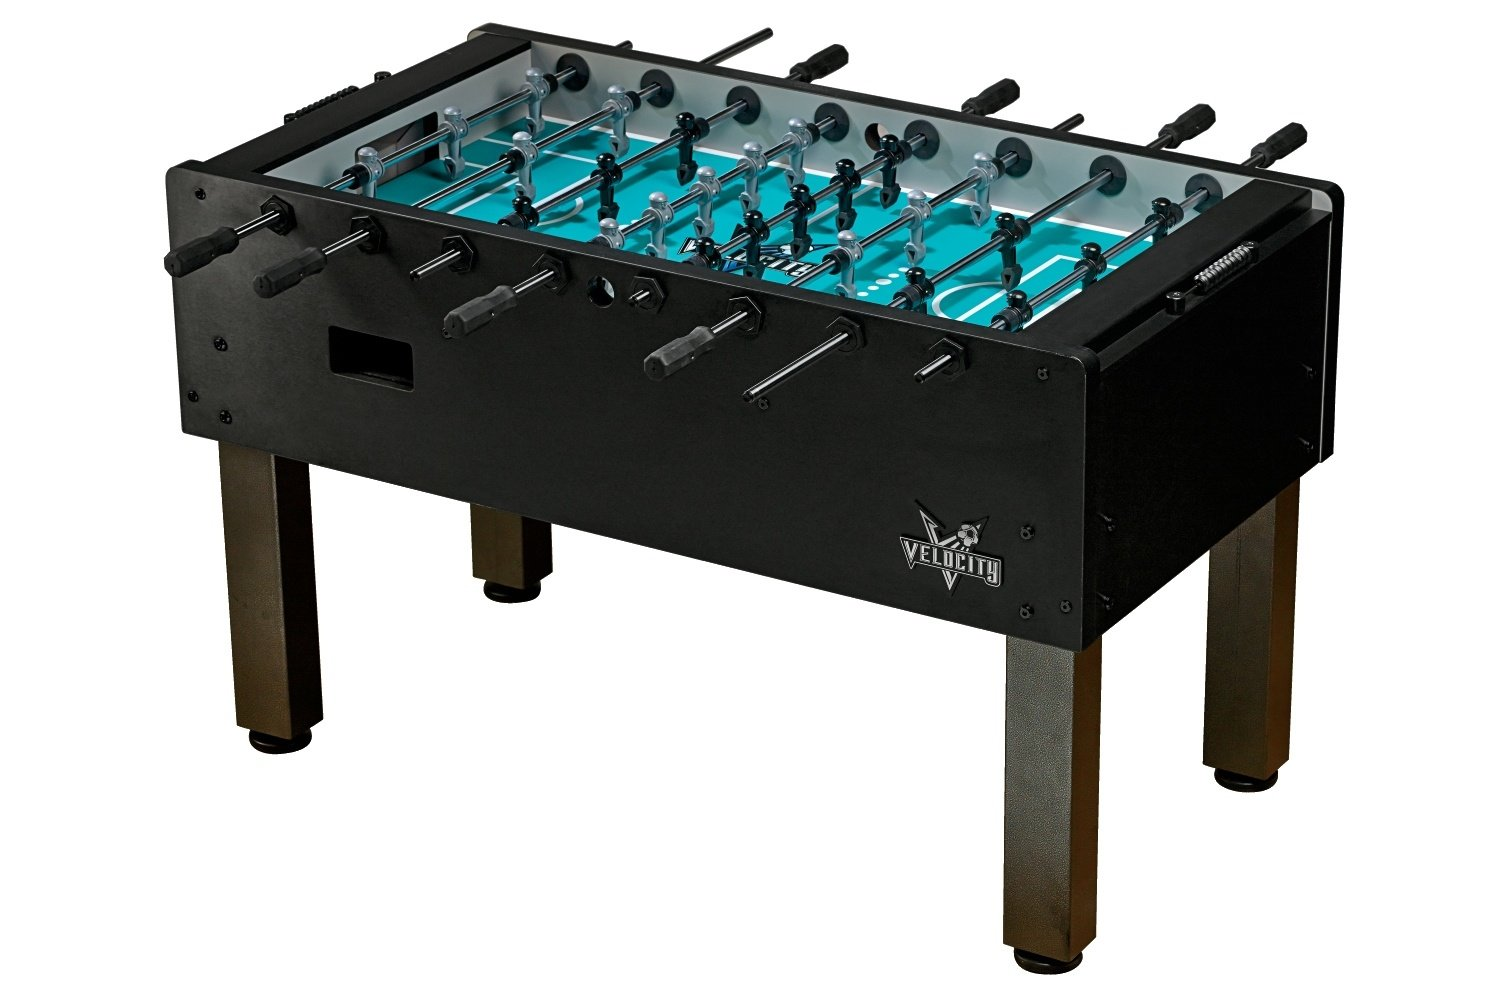 "Velocity Black HJ Scott Professional Foosball Table, 56 3⁄4"" x 29 3⁄4"" x 35 1⁄2"", VF5100, 3 Goalies by HJ Scott"